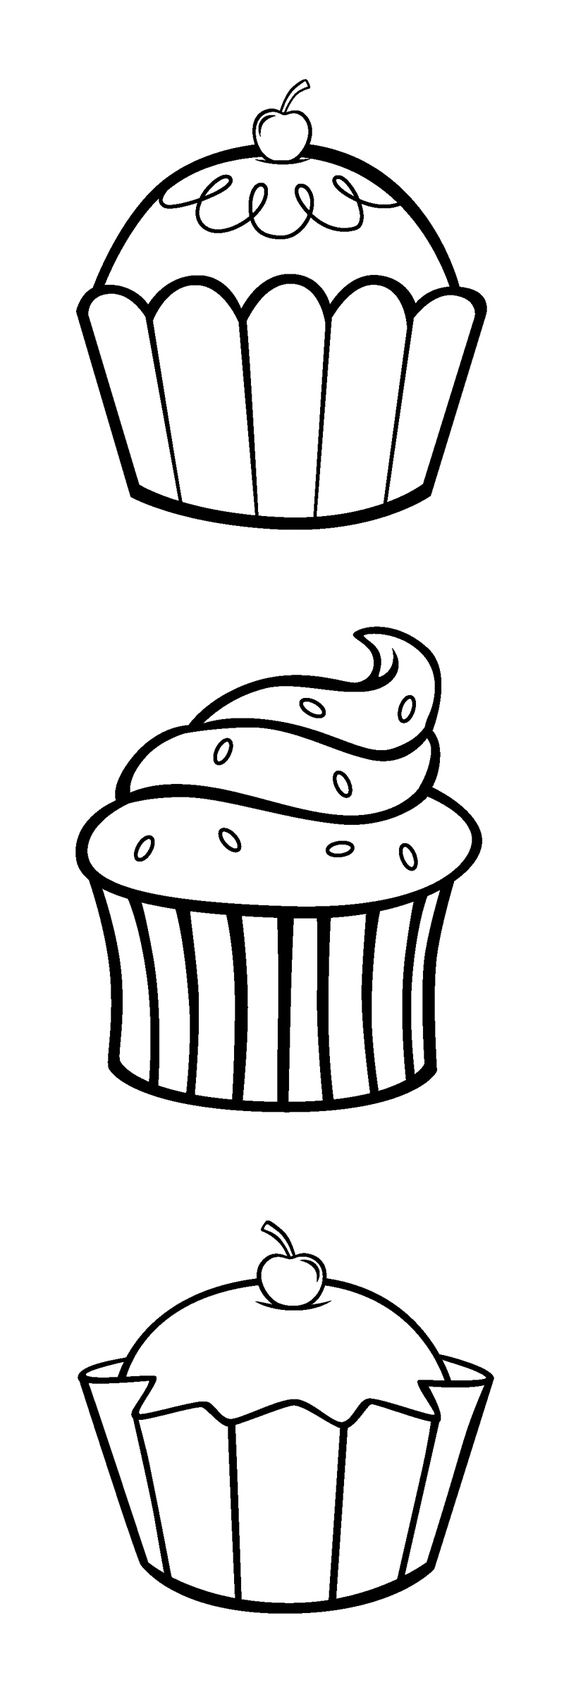 if you can print this pic of cupcakes